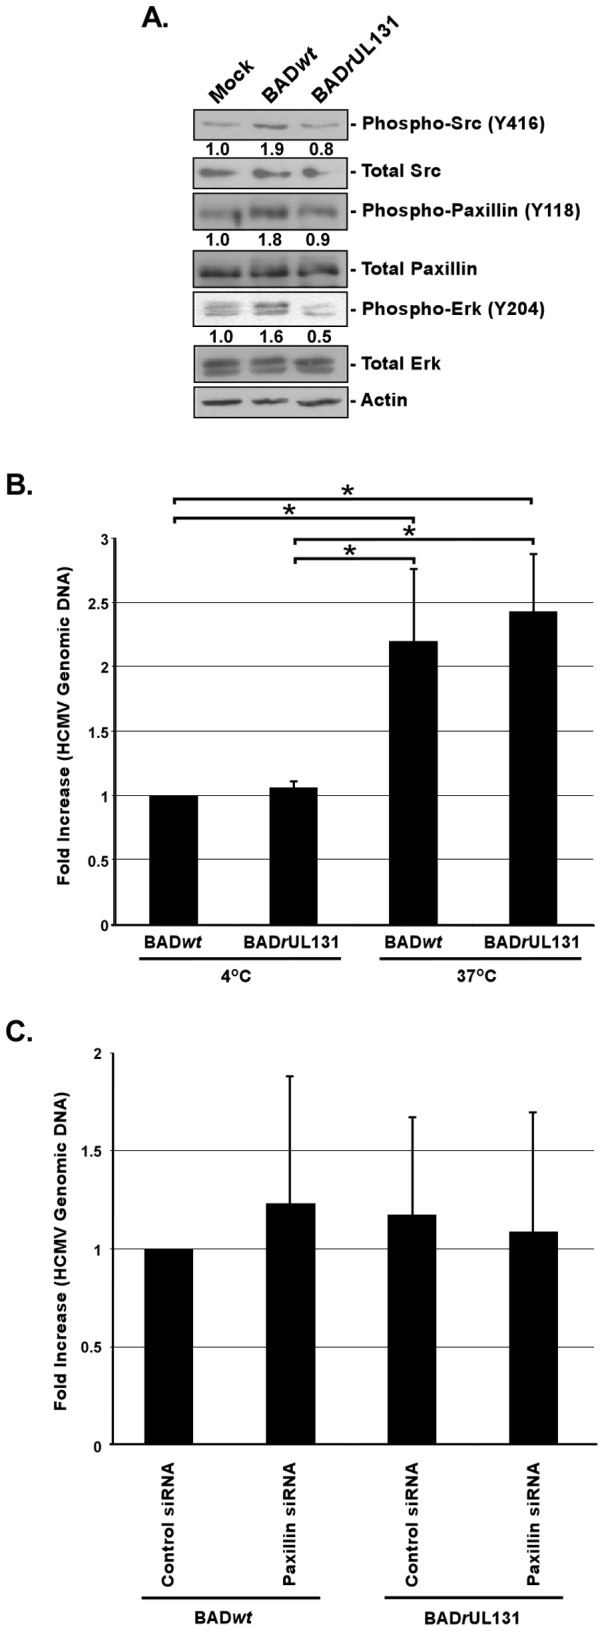 Presence of the gH/gL/UL128-131 complex has no effect on the integrin/Src/paxillin signaling pathway in and HCMV internalization into fibroblasts. (A) Fibroblasts were cultured in low serum for 24 h at 37°C/5% CO 2 . Fibroblasts were then mock- or HCMV (BADwt or BADrUL131)-infected (M.O.I. of 5) and harvested at 20 min. pi. Western blot analyses were performed using antibodies specific for the phosphorylated and non-phosphorylated forms of Src, paxillin, and Erk. Actin was used as a loading control. The results were also measured by densitometry with relative numbers shown in the figure. (B) Fibroblasts were infected with BADwt or BADrUL131 (M.O.I. of 0.1) for 1 h at 4°C, then left at 4°C or temperature shifted to 37°C for 1 h. (C) Fibroblasts were transfected with siRNA complementary to paxillin or a control siRNA for 48 h. Fibroblasts were infected with BADwt or BADrUL131 (M.O.I. of 0.1) for 1 h at 4°C, then temperature shifted to 37°C for 1 h. (B and C) Then, fibroblasts were washed and treated with Proteinase K solution for 1 h. Cells were then harvested and quantitative real-time PCR was performed using primers complementary to genomic HCMV DNA and 18S rRNA, as an internal control. Results are plotted as a mean ±SEM. Student's T-tests were performed and p